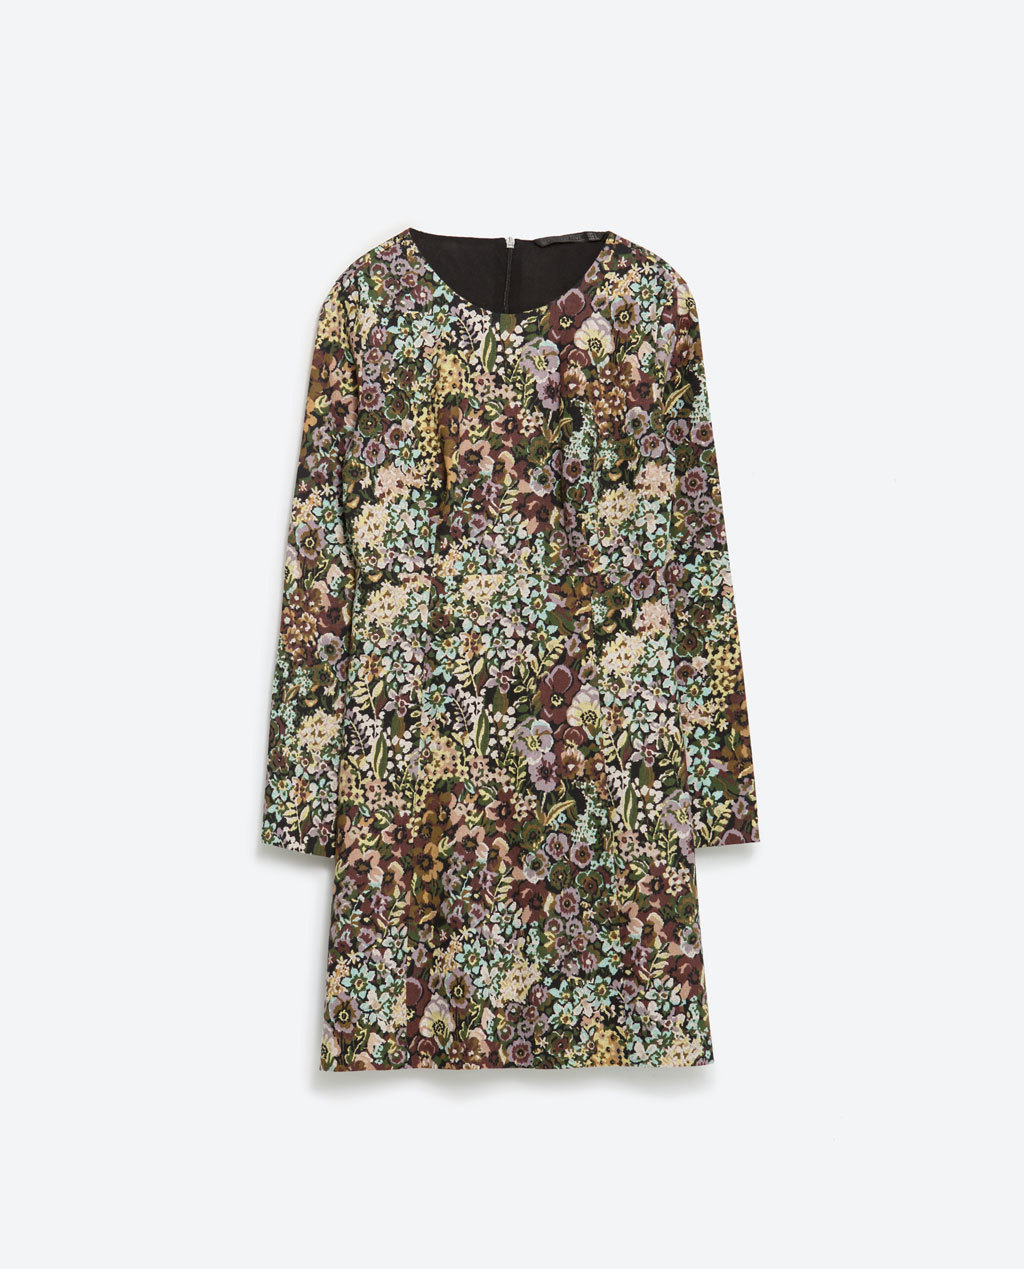 Printed Dress - style: shift; length: mid thigh; neckline: round neck; predominant colour: camel; secondary colour: taupe; occasions: casual, creative work; fit: soft a-line; fibres: cotton - stretch; sleeve length: long sleeve; sleeve style: standard; texture group: crepes; pattern type: fabric; pattern: patterned/print; season: a/w 2015; wardrobe: highlight